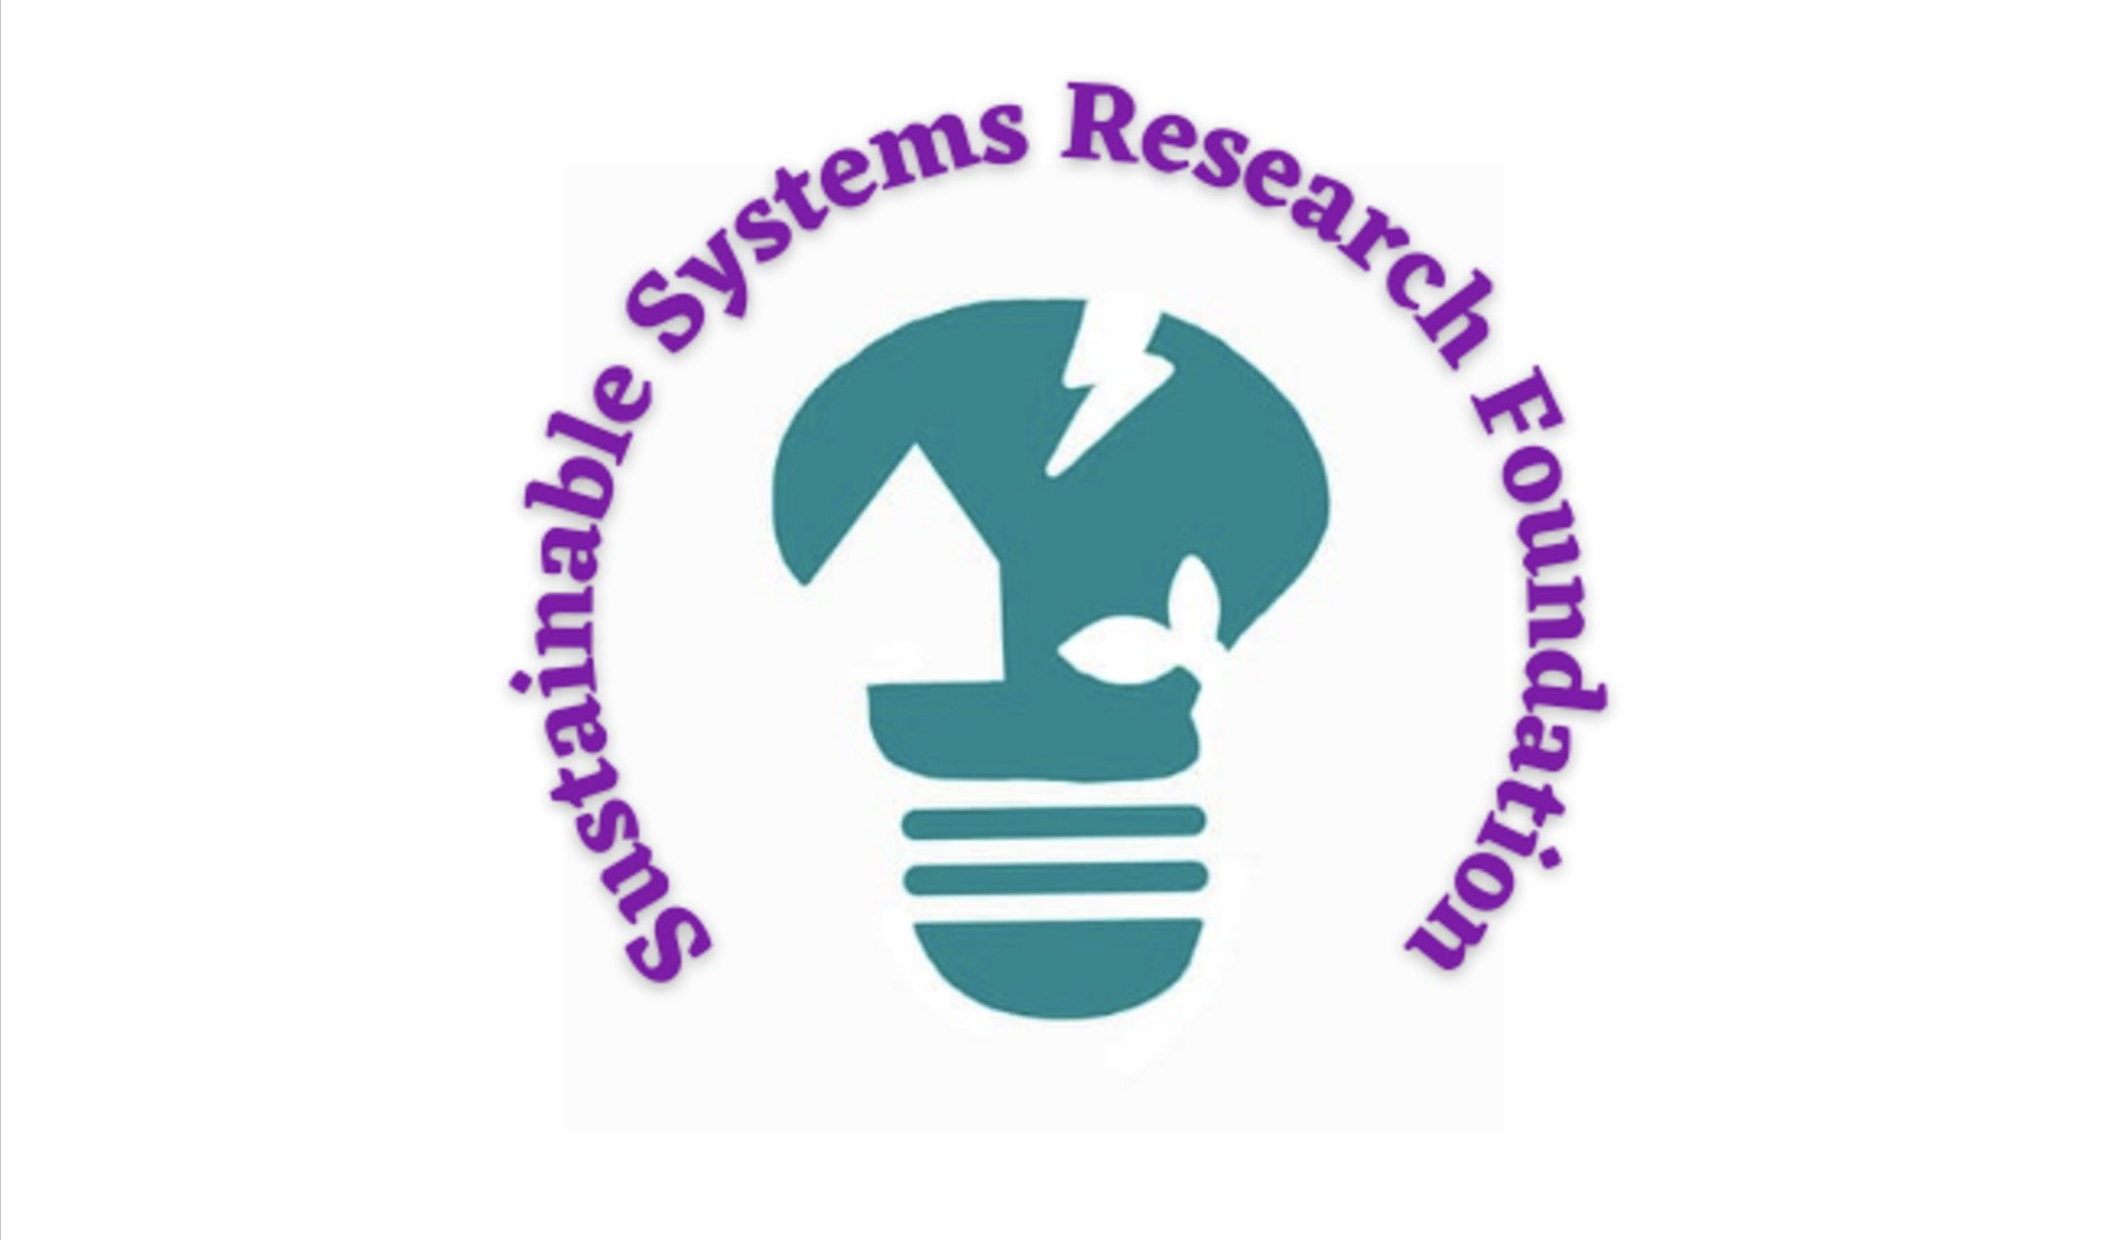 Sustainable Systems Research Foundation